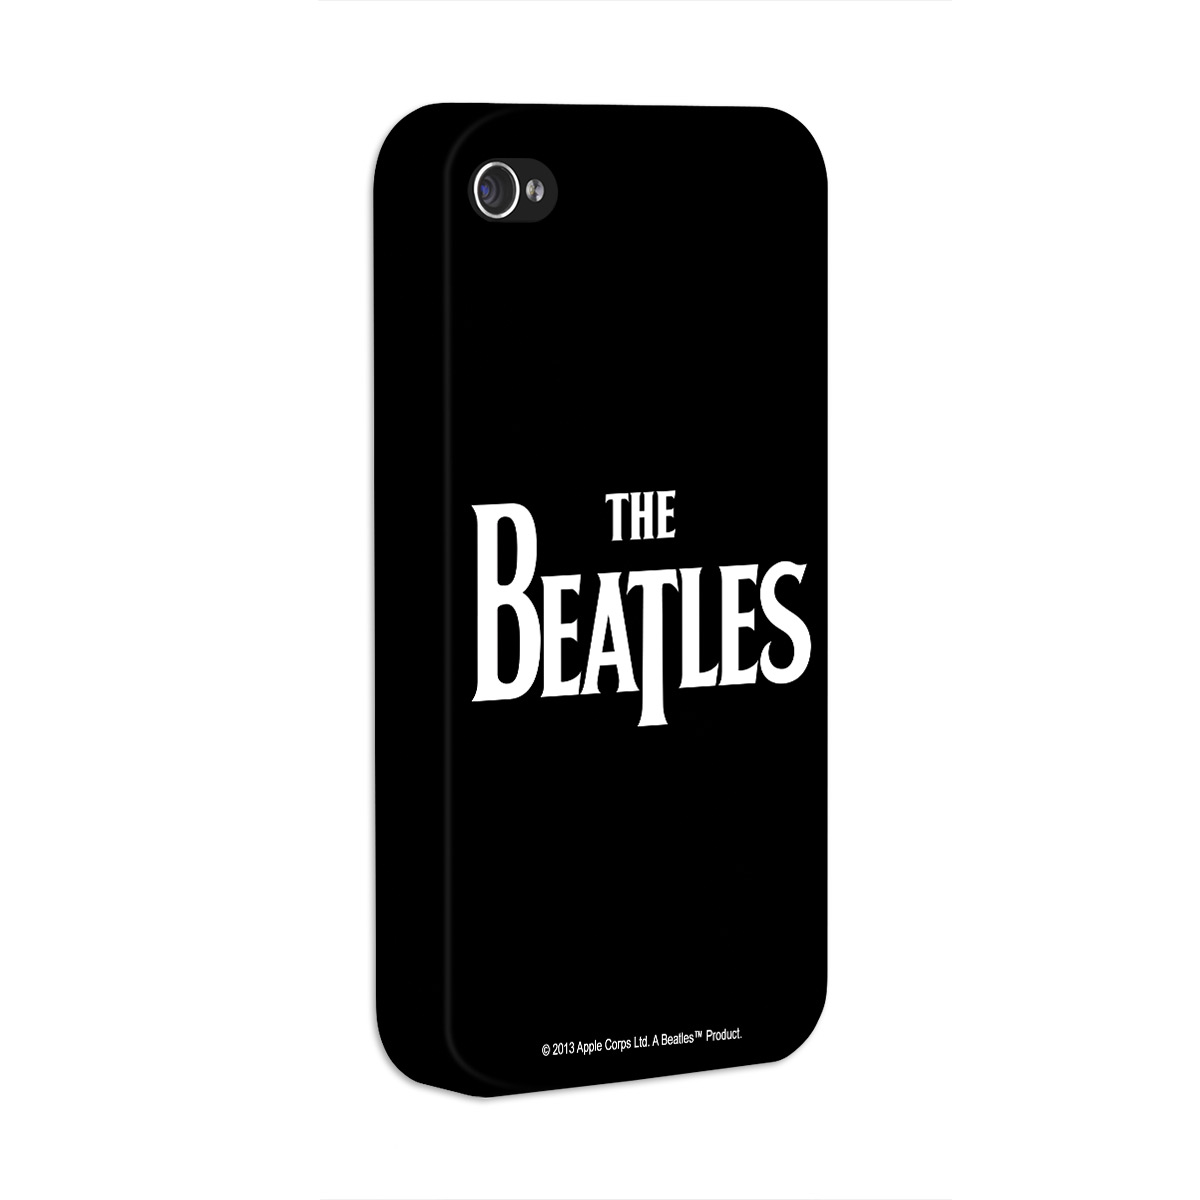 Kit Com 3 Capas de iPhone 4/4S The Beatles Coletâneas